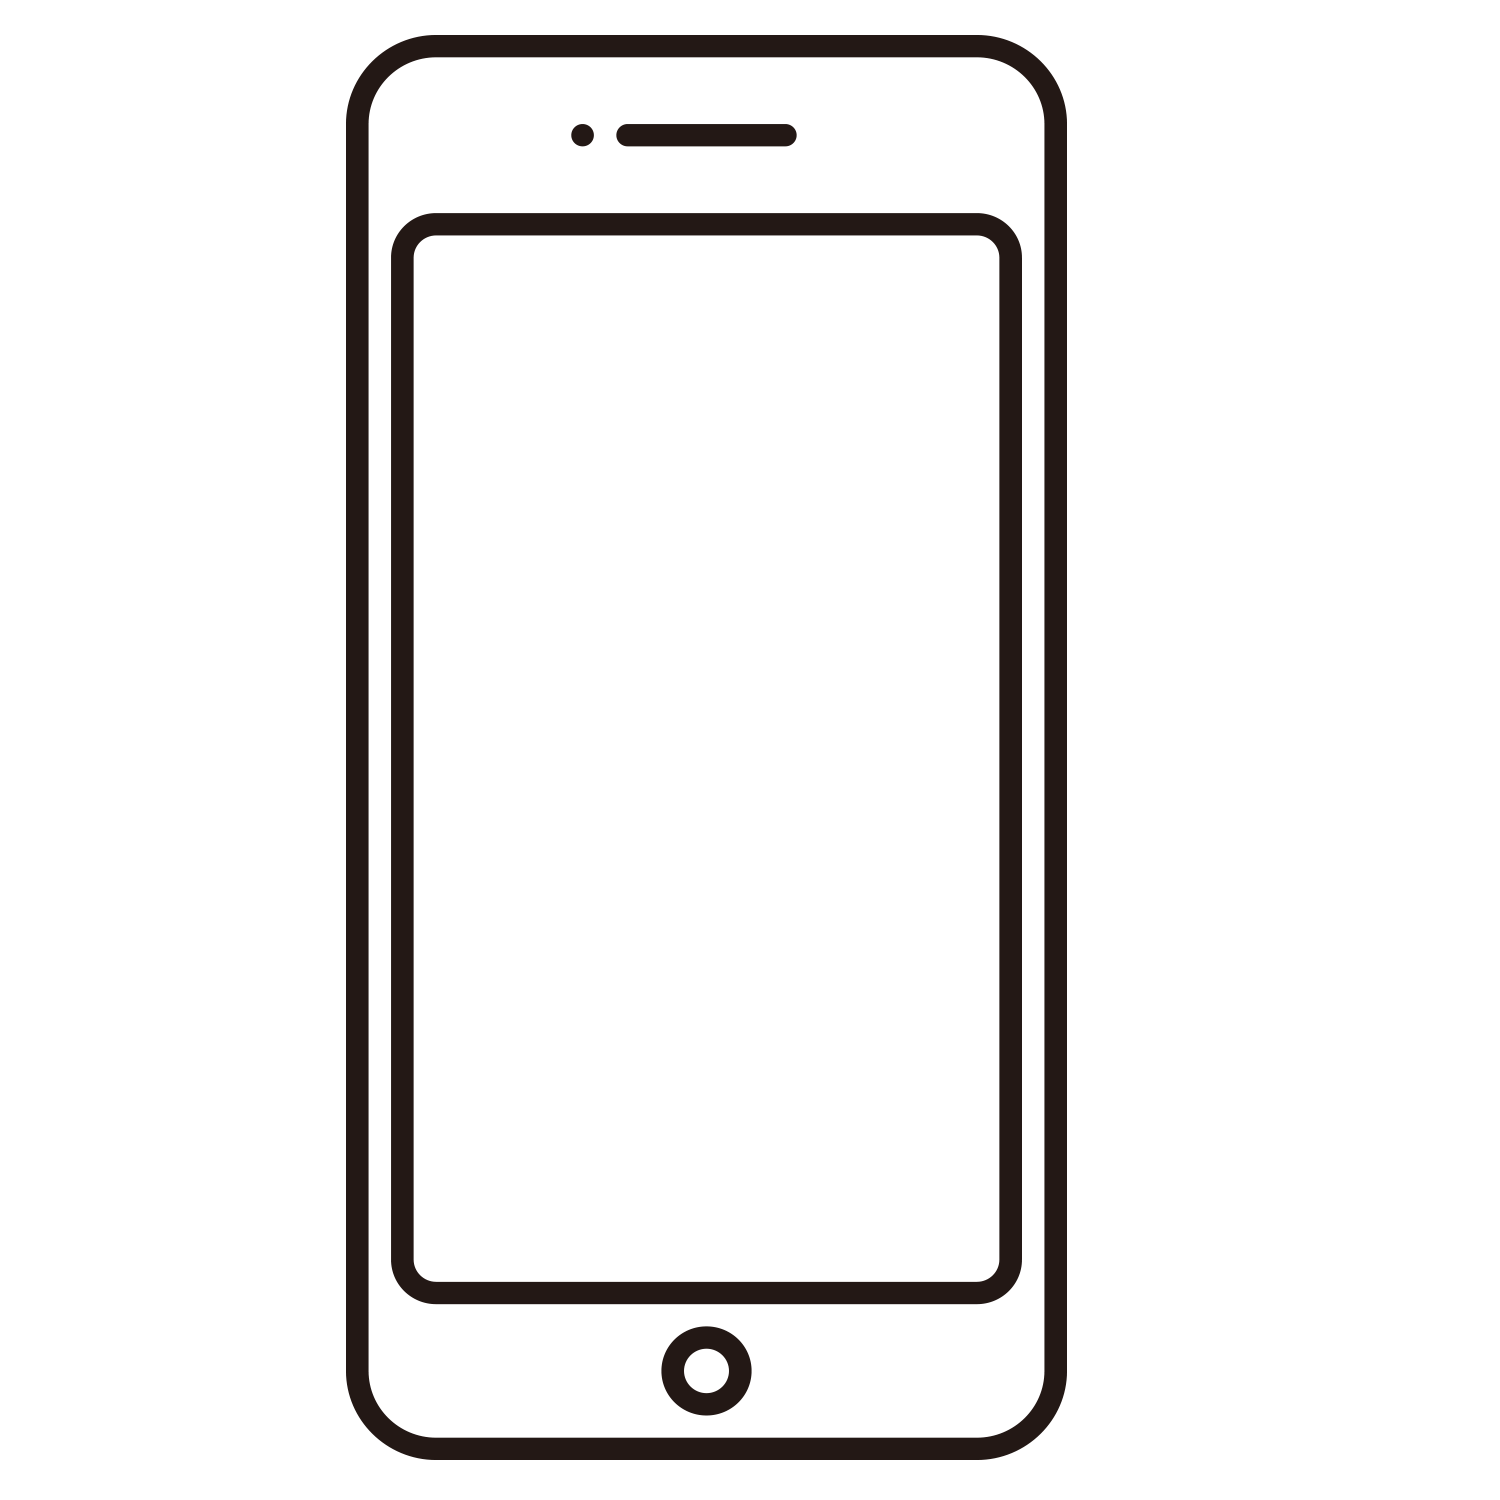 Samsung drawing wireframe. Galaxy logo computer icons